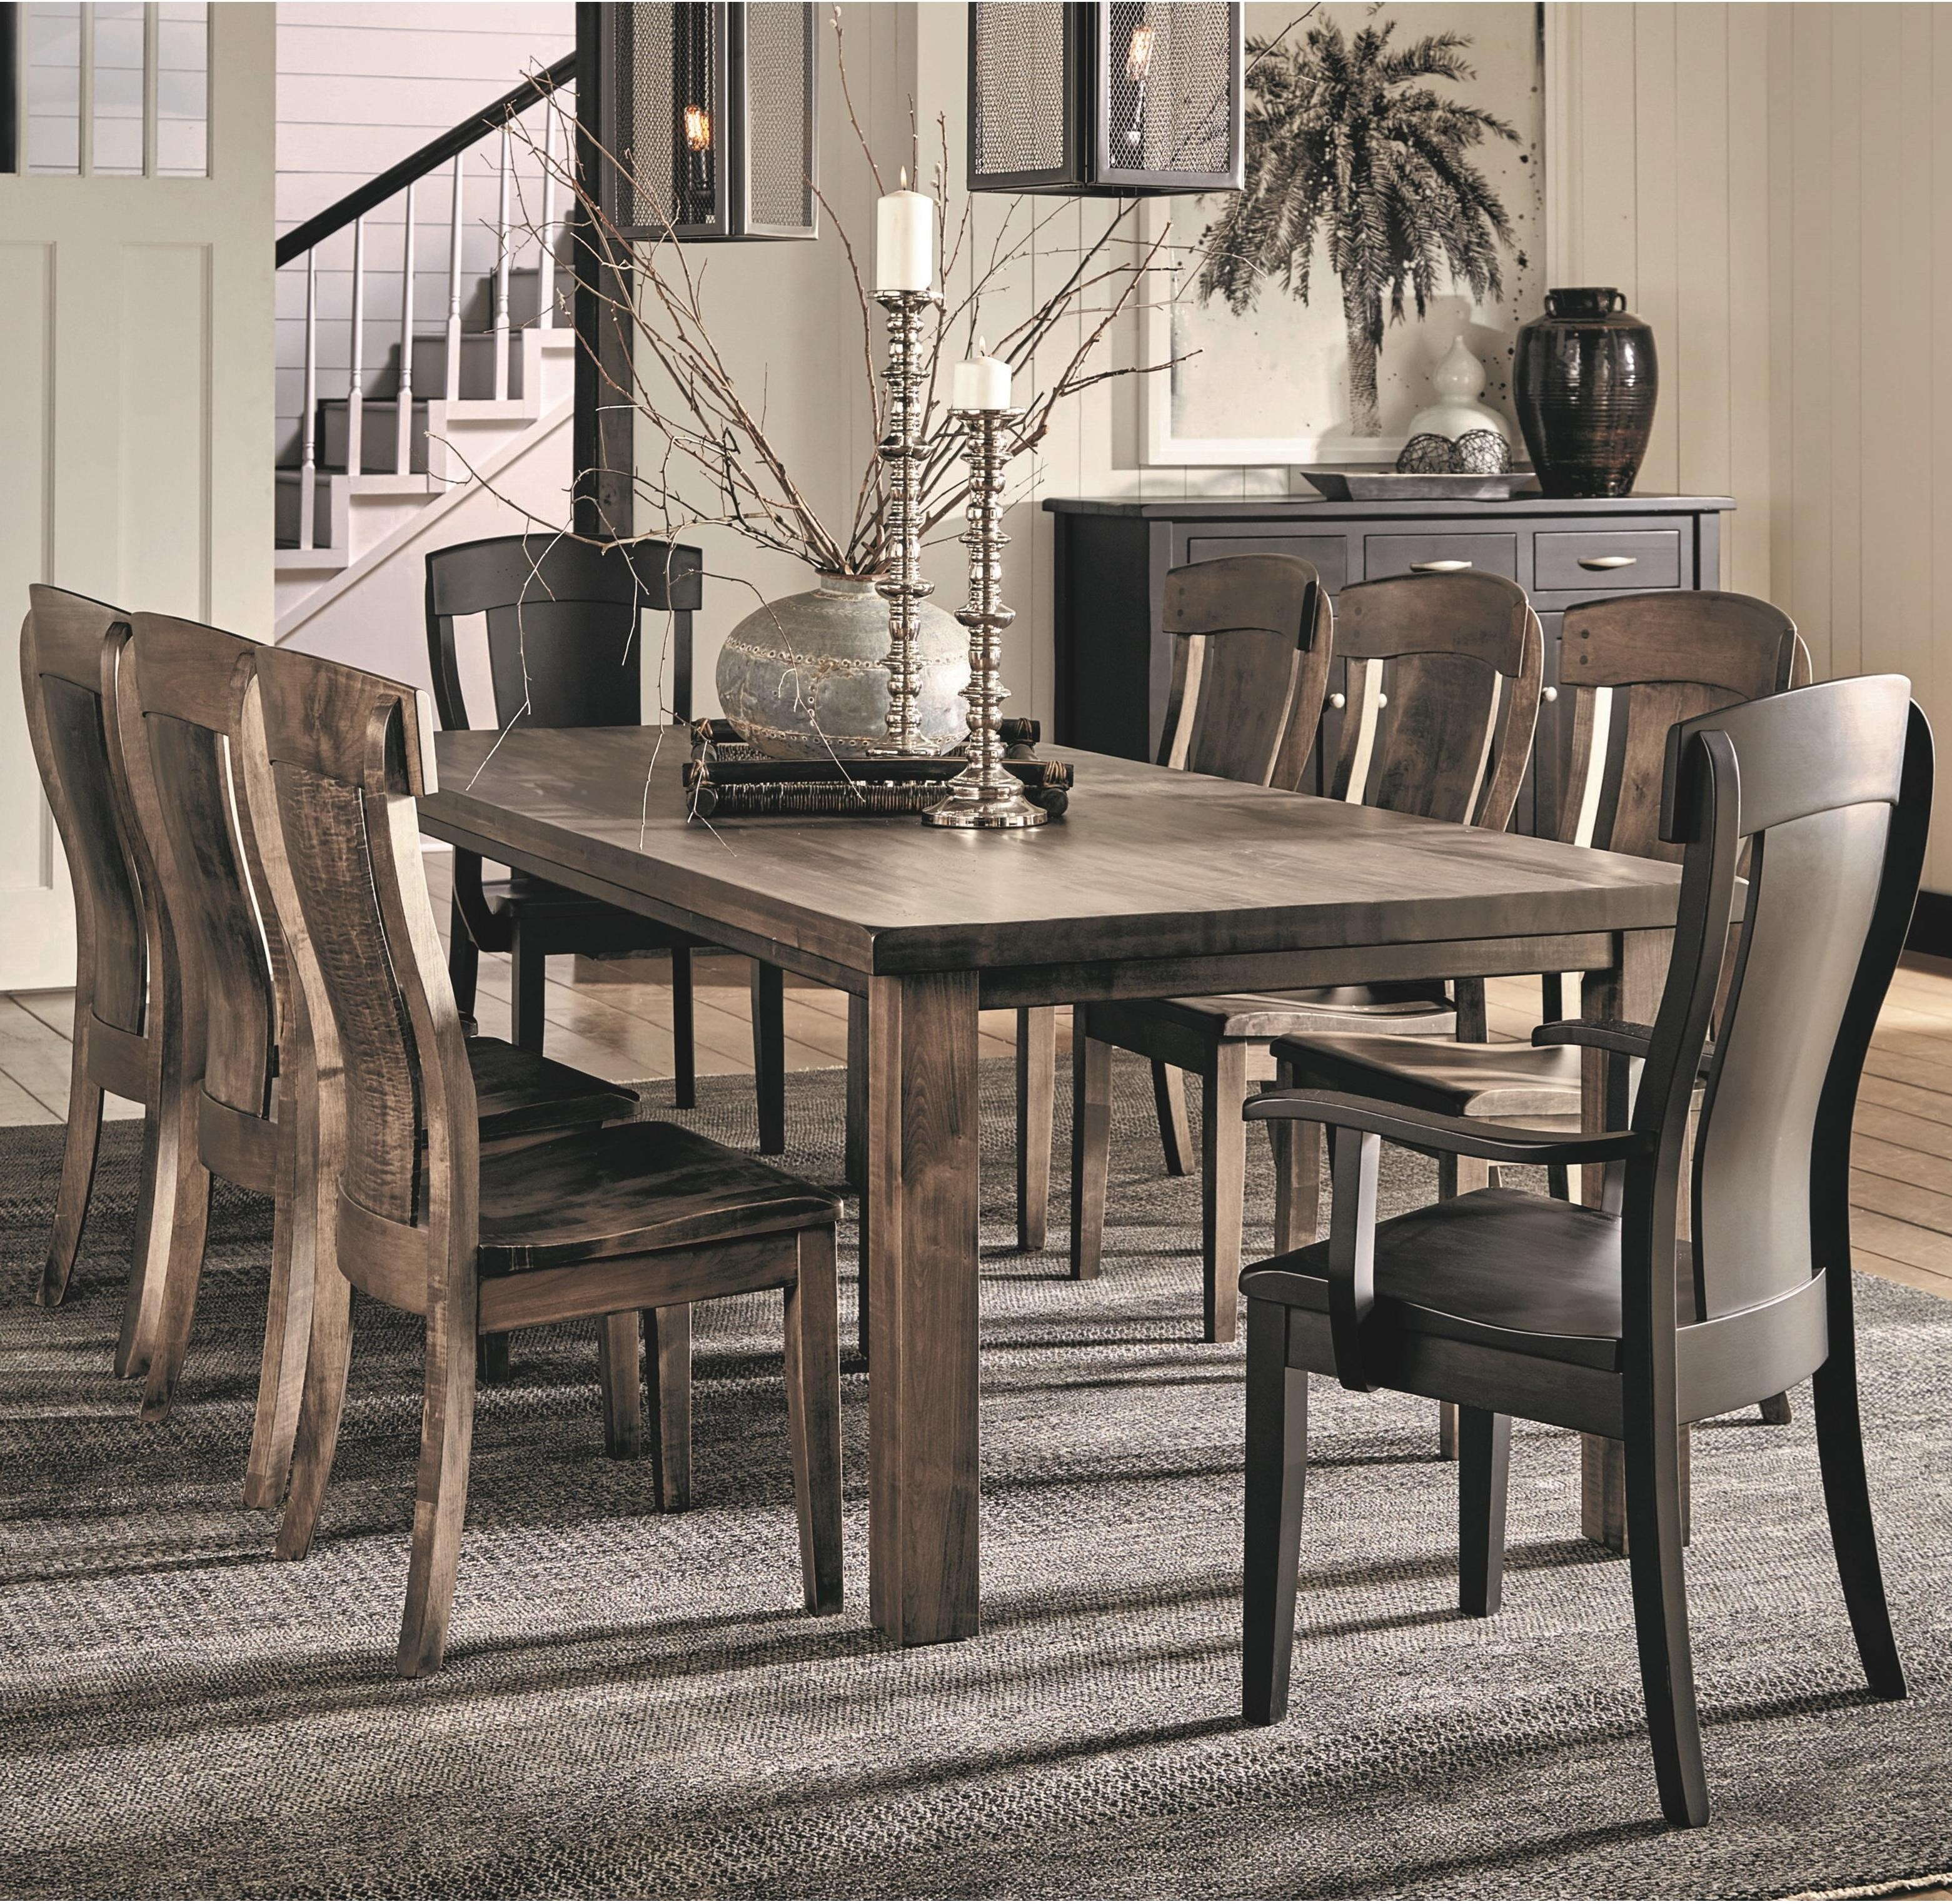 Eastchester 9 Piece Table and Chair Set by Daniel's Amish at Belfort Furniture